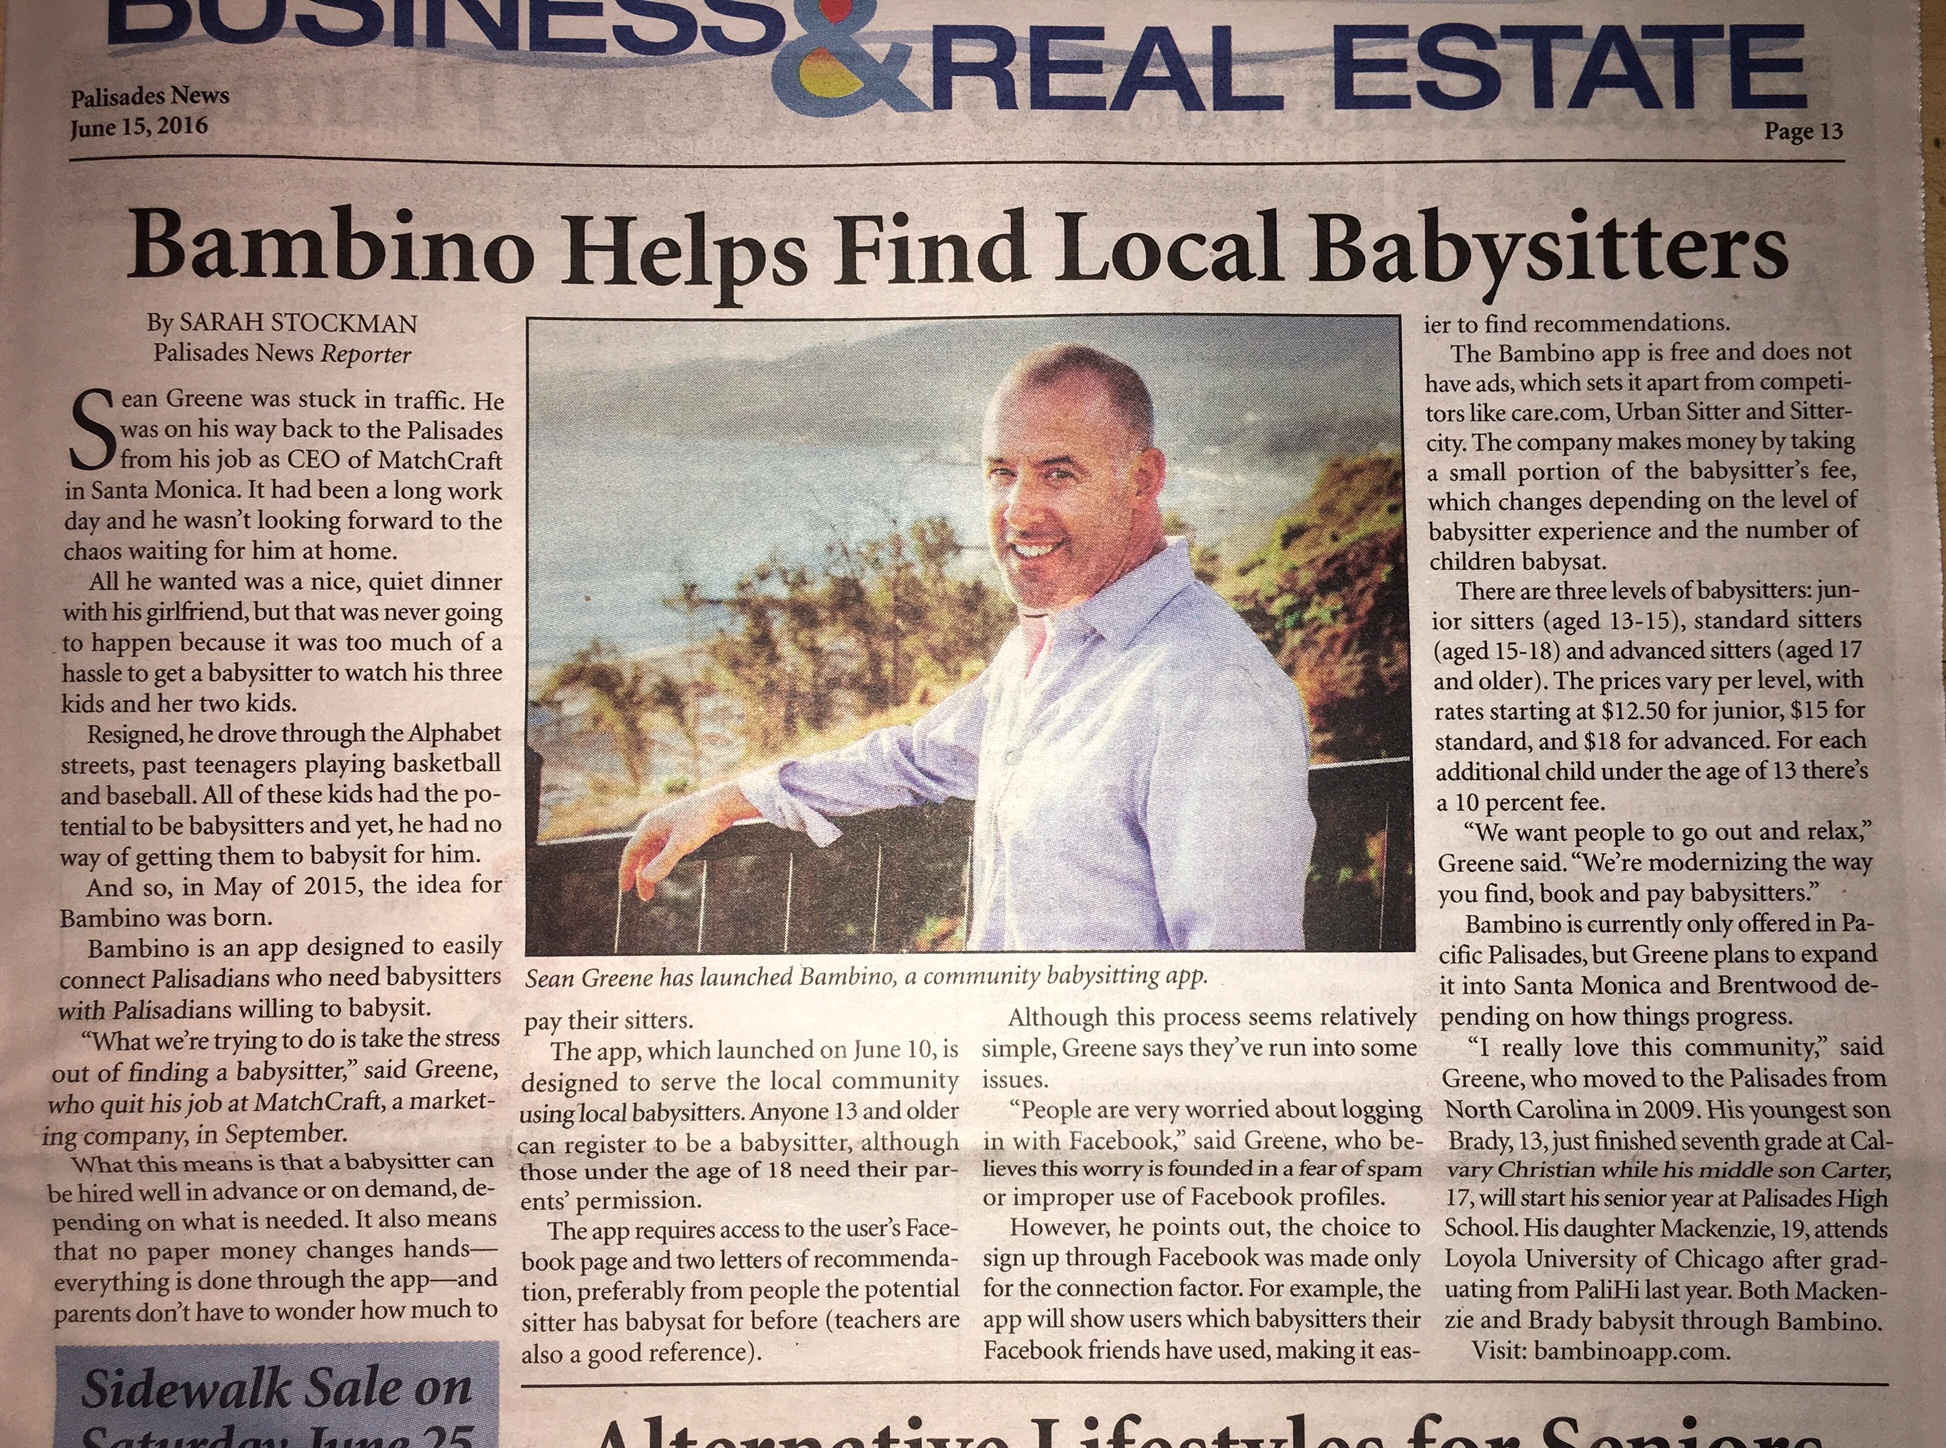 Bambino feature in the Palisades News.jpg